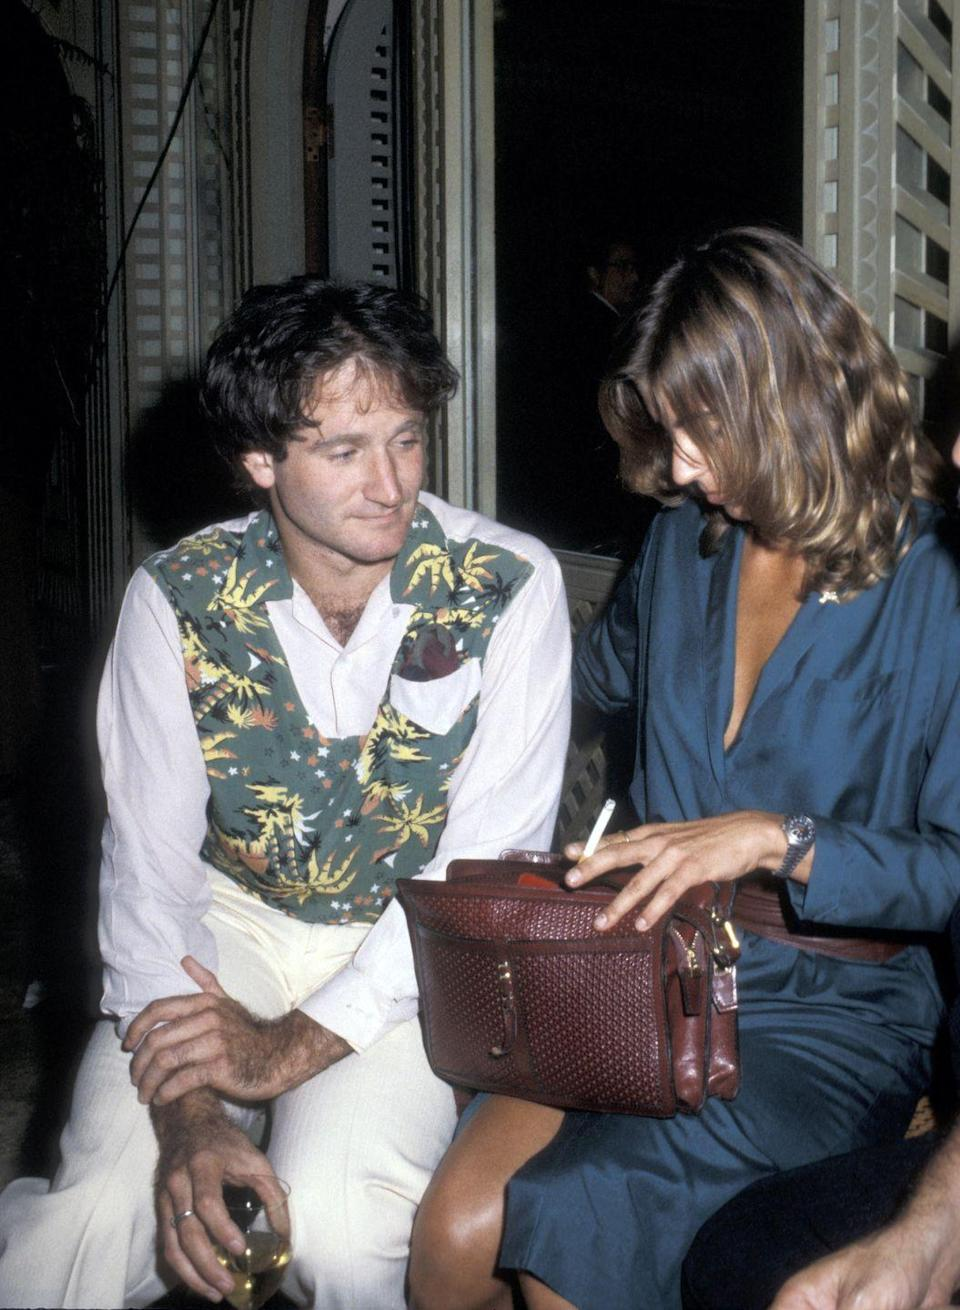 <p>Woven leather purses followed suit after straw bags, as seen here on Valerie Velardi, Robin Williams' then-wife. </p>